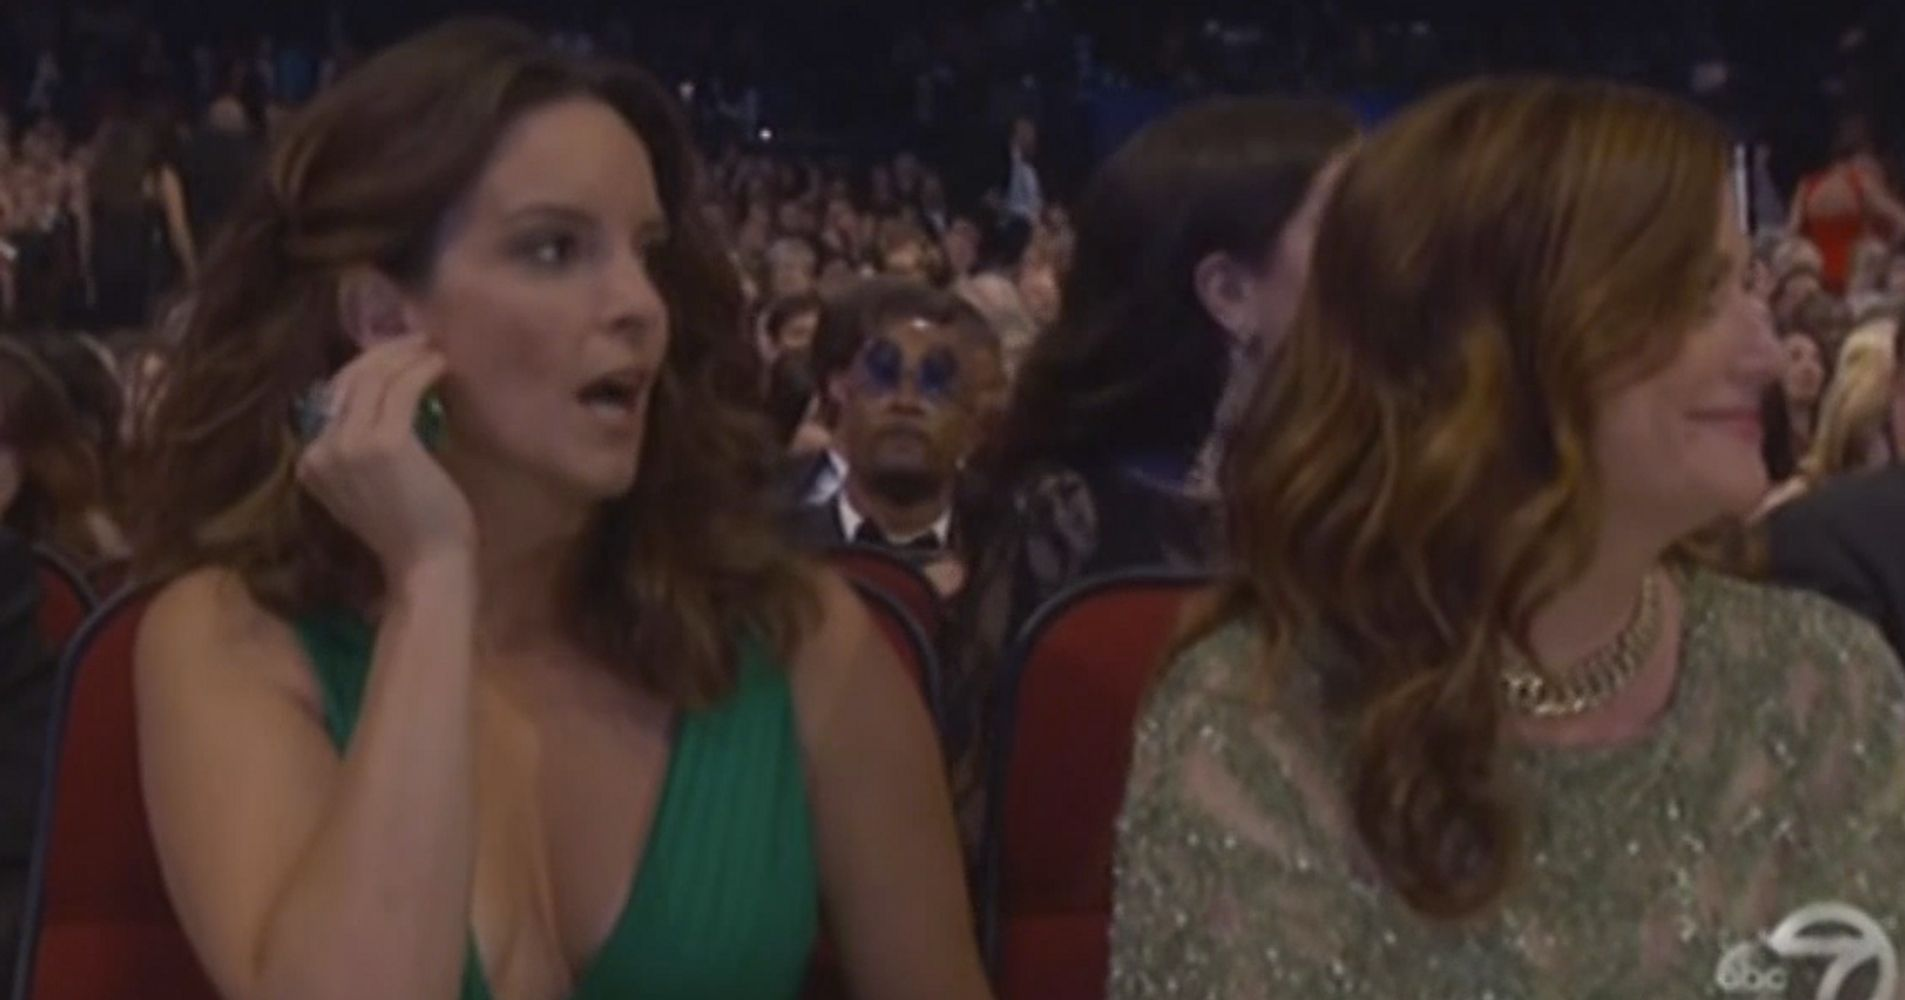 How To Basic Who Is By Hugh Alderseywilliams Tina Fey's Face After That  Bill Cosby Joke